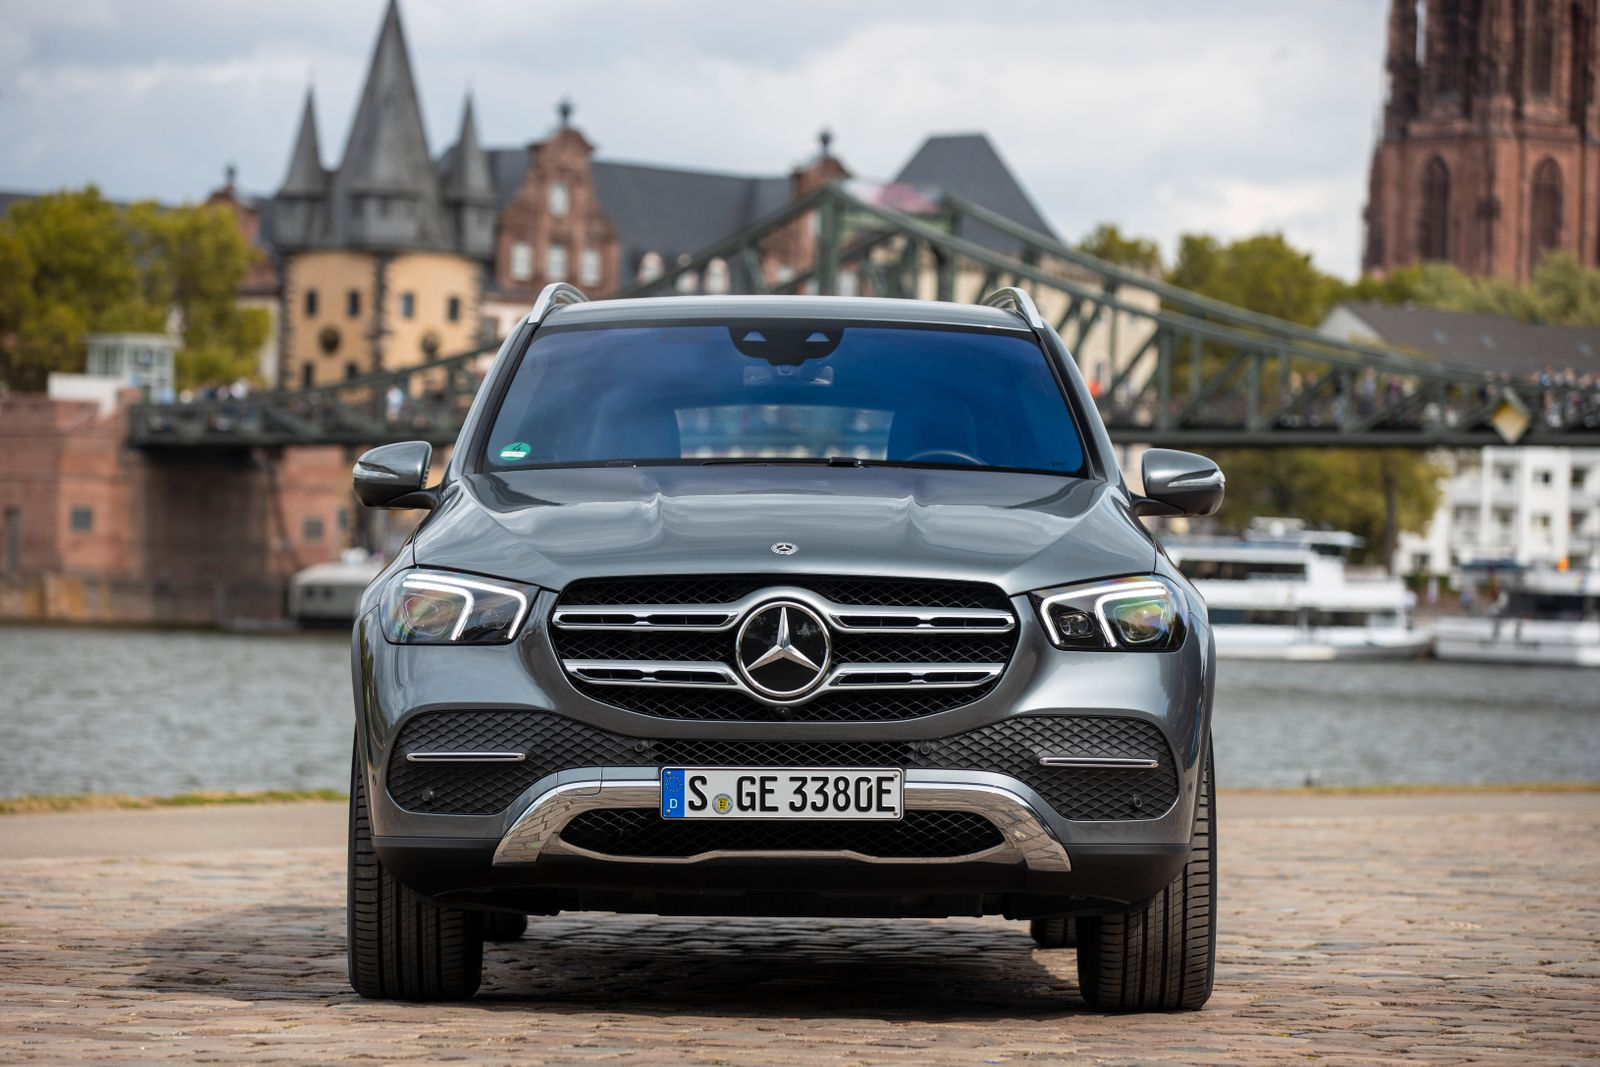 Mercedes-Benz GLE 350 de 4MATIC und GLC 300 e 4MATIC: Neue Plug-in-Hybride der dritten Generation: Der nächste Sprung bei der Reichweite Mercedes-Benz GLE 350 de 4MATIC and GLC 300 e 4MATIC: New third-generation plug-in hybrids: The next jump in operatin